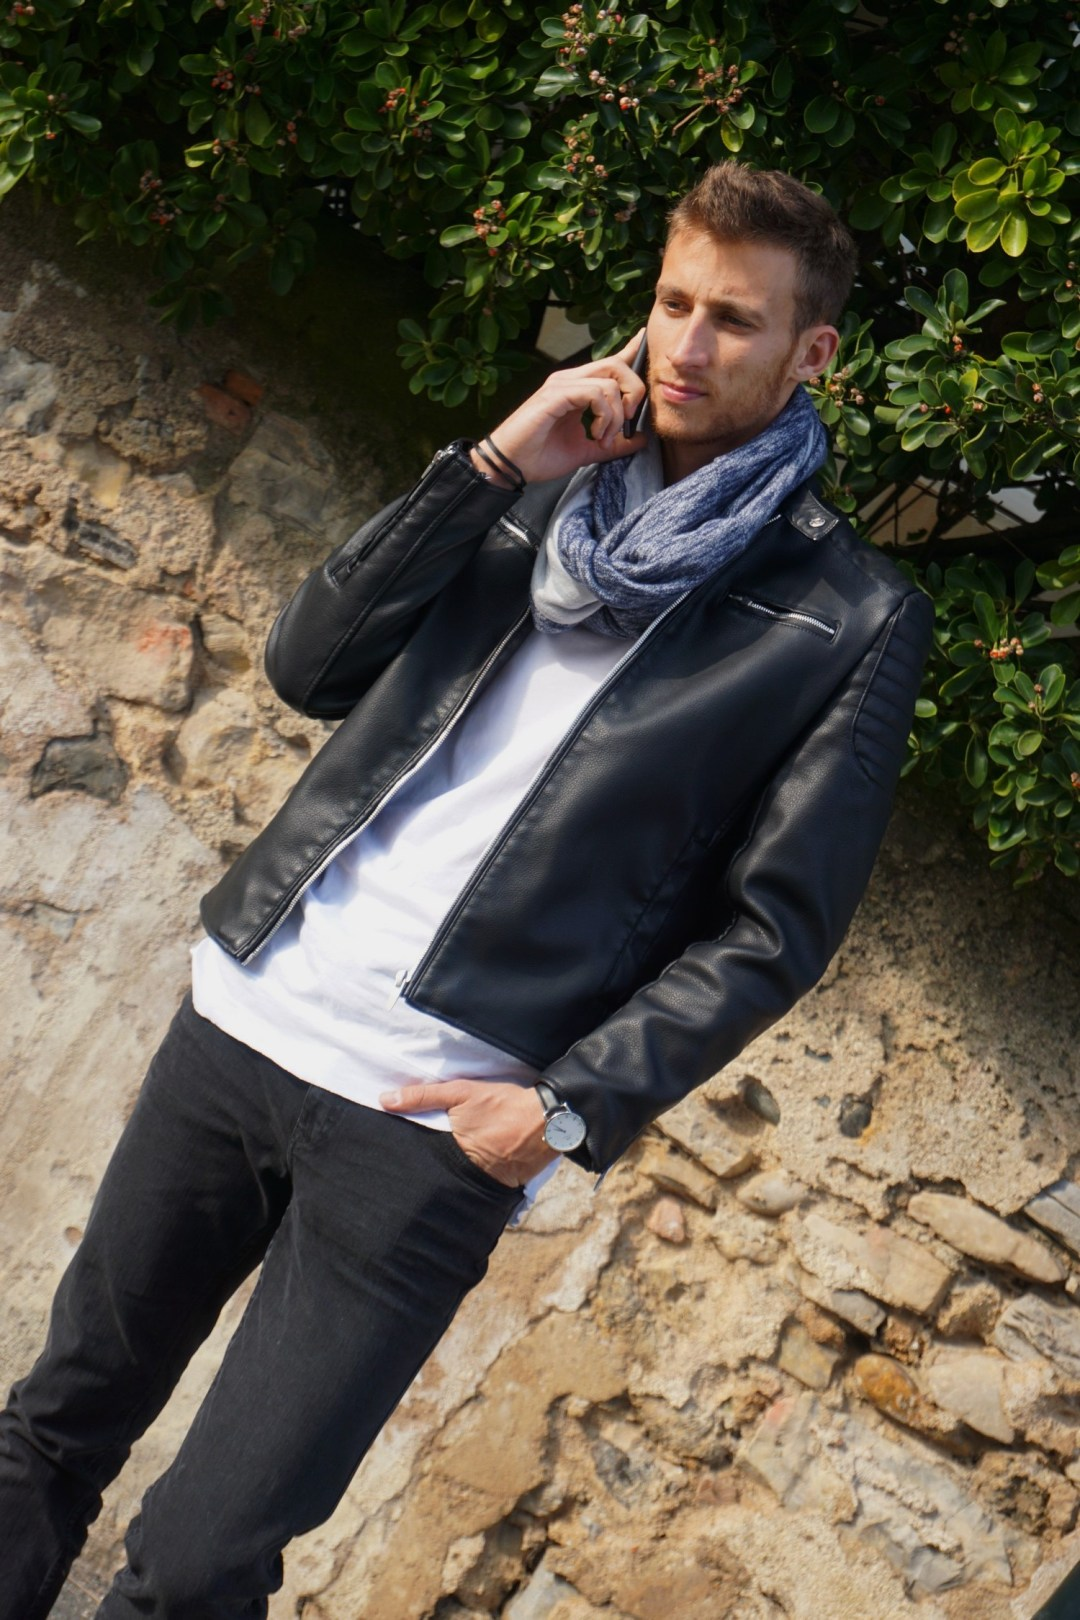 LOOK HOMME ROCK CHIC PERFECTO ZARA BLOG MODE COUPLE BORDEAUX BIDART WEEK END DANS LE PAYS BASQUE 13